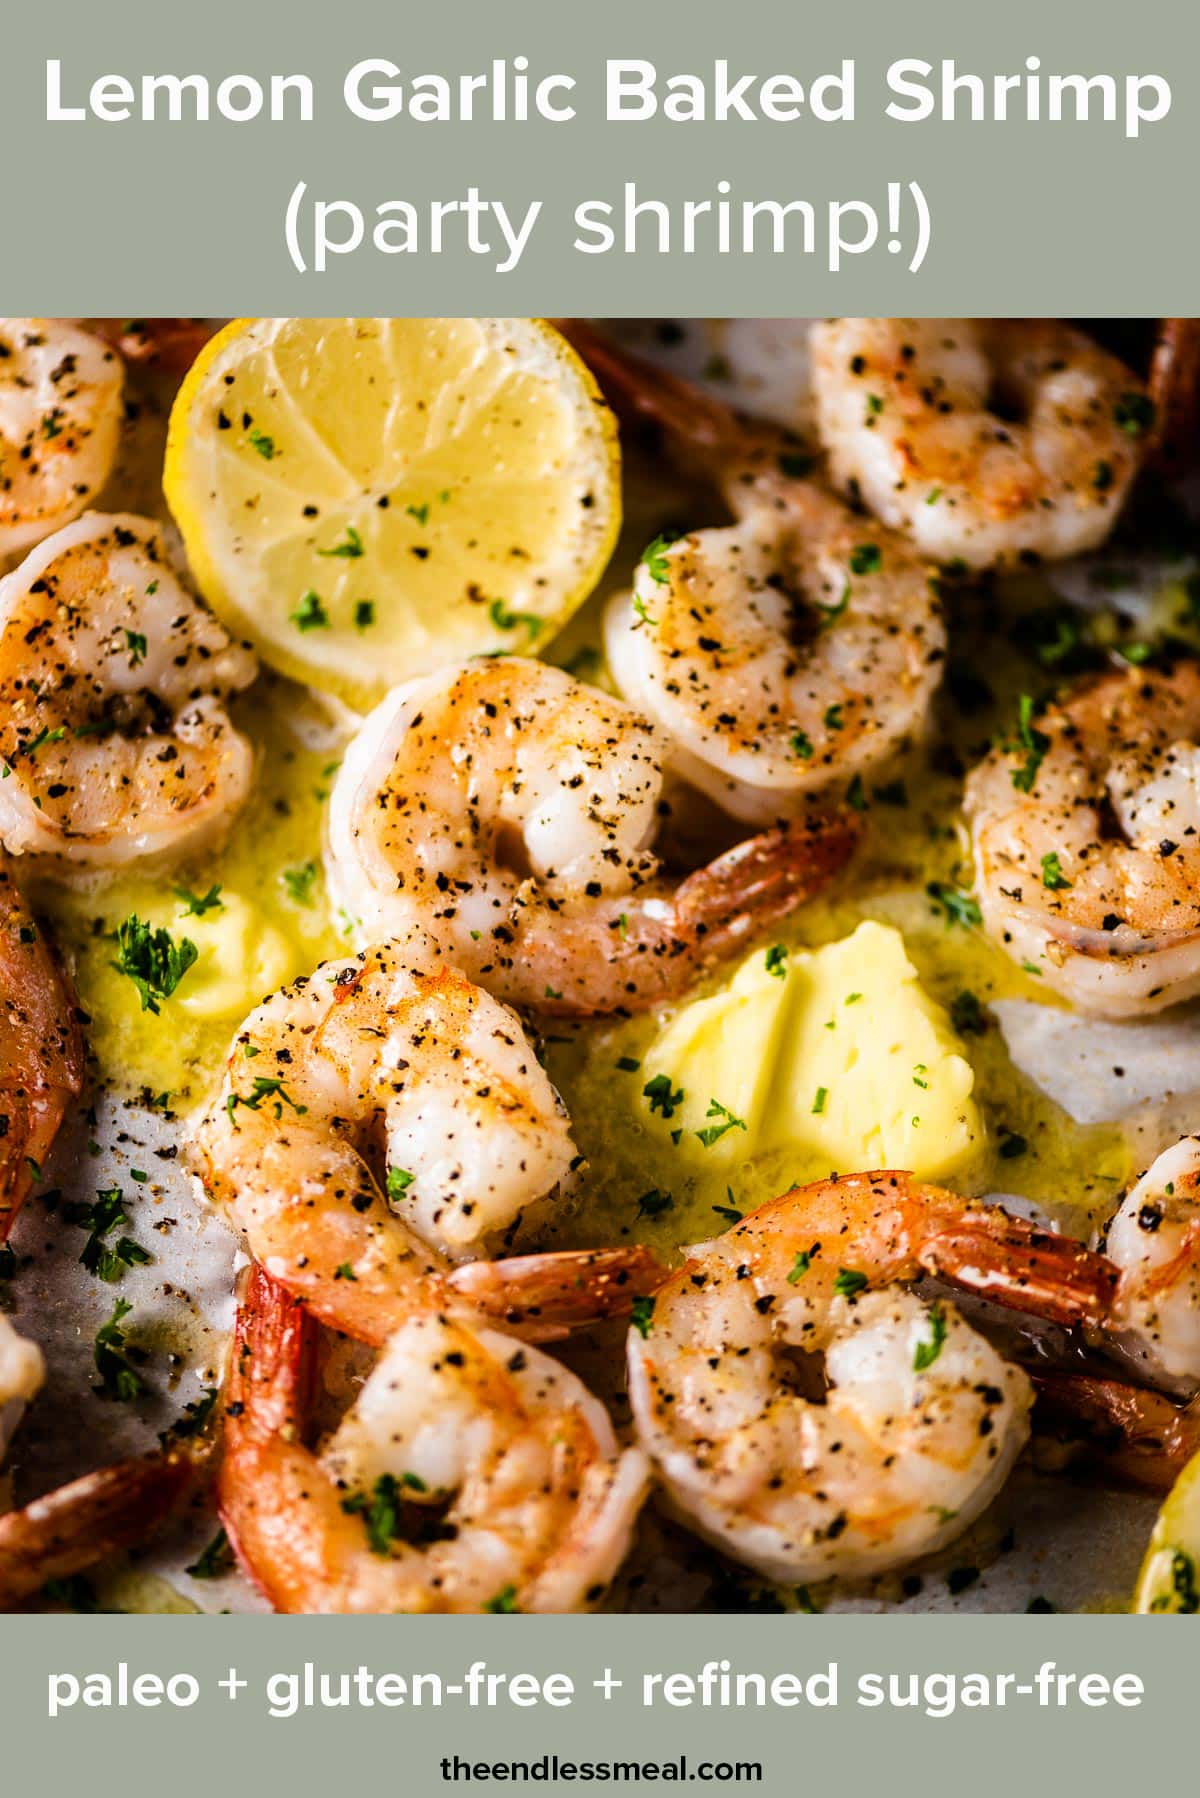 Lemon garlic butter baked shrimp on a tray with lemons and the recipe title on top of the picture.